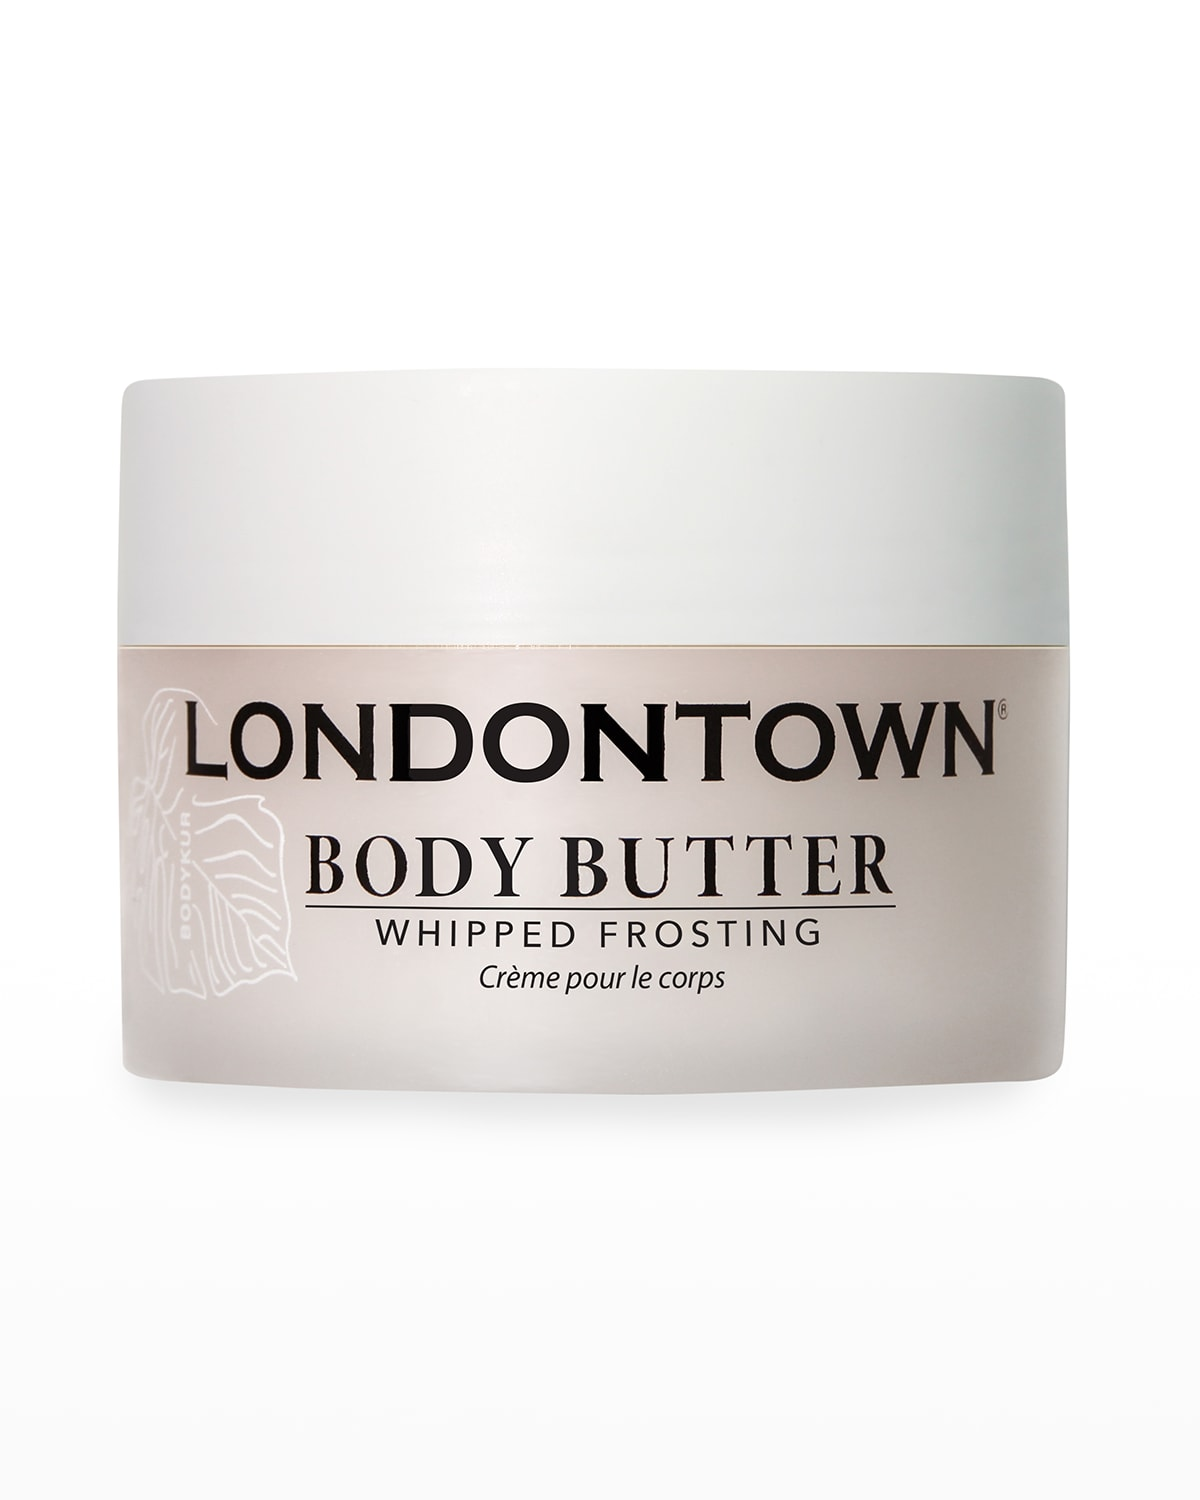 7.6 oz. Whipped Frosting Body Butter